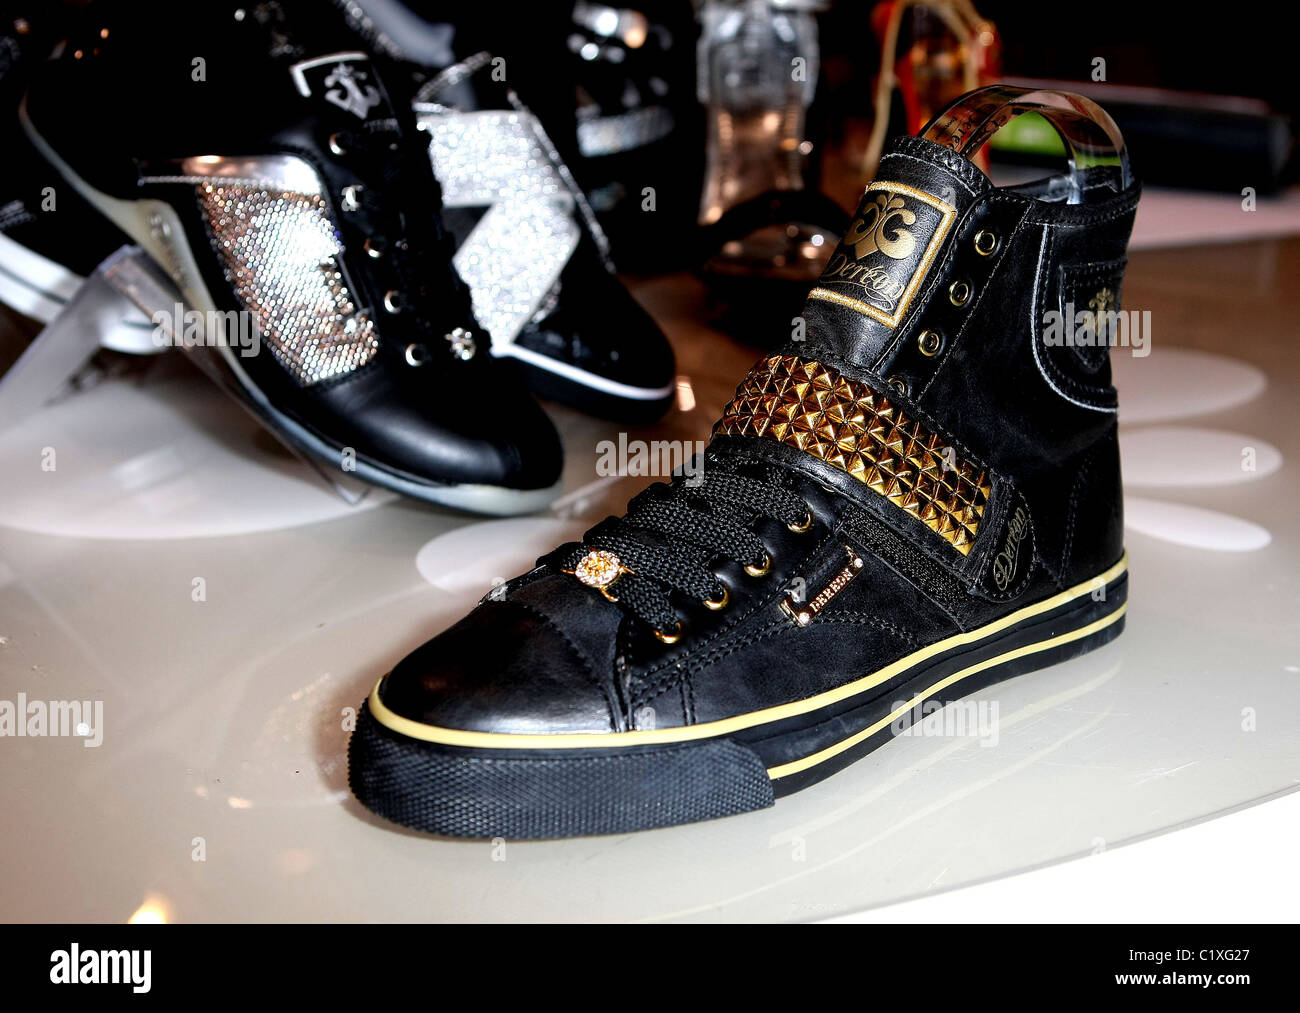 Dereon Shoes 2009 MAGIC Marketplace at